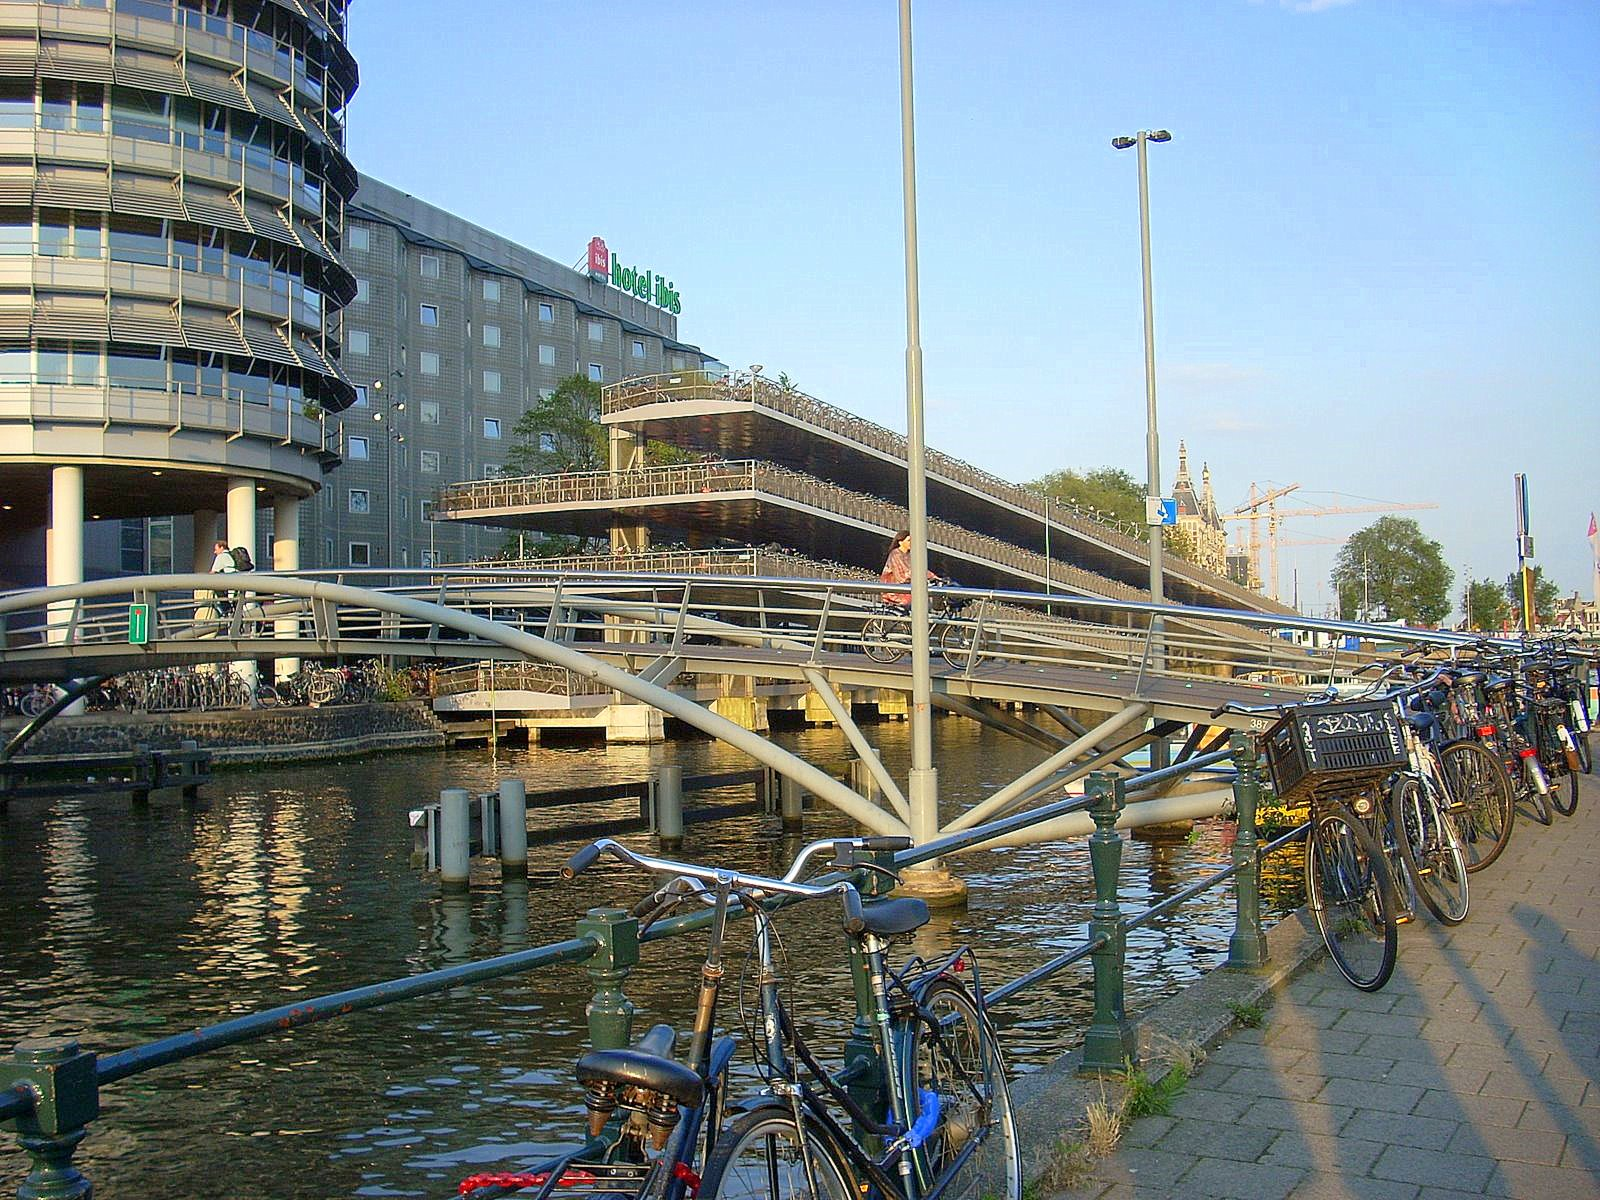 Hotel and bike parking